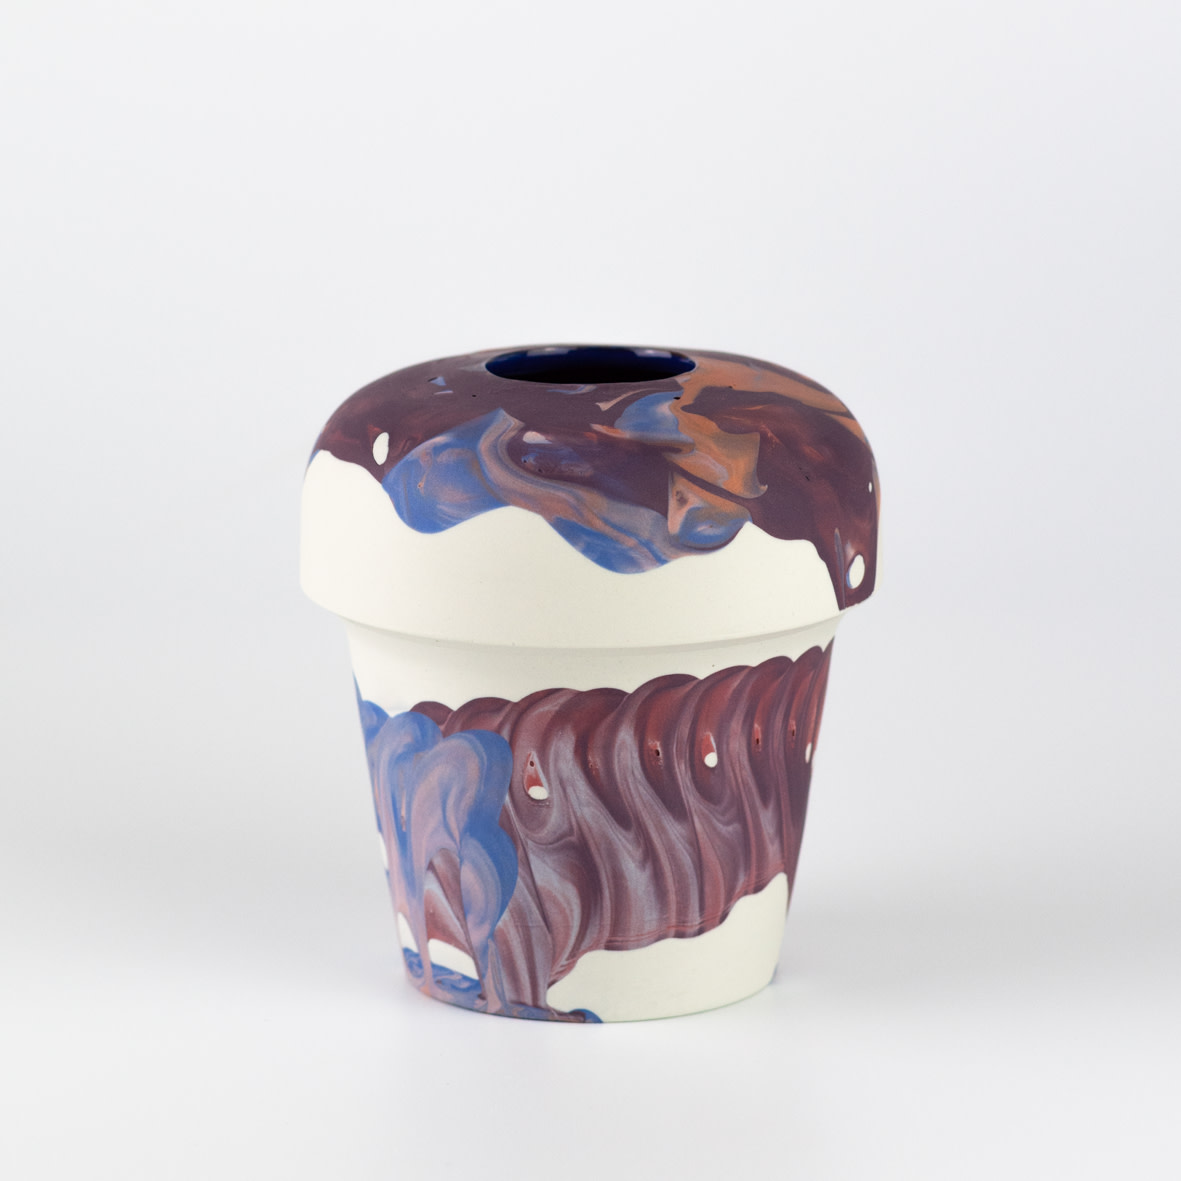 "<span class=""link fancybox-details-link""><a href=""/artists/219-james-pegg/works/6573-james-pegg-kontohondros-vase-2019/"">View Detail Page</a></span><div class=""artist""><strong>James Pegg</strong></div> <div class=""title""><em>Kontohondros Vase</em>, 2019</div> <div class=""medium"">action-cast stained porcelain with glazed interior</div><div class=""price"">£155.00</div><div class=""copyright_line"">OwnArt: £ 15.50 x 10 months, 0% APR</div>"